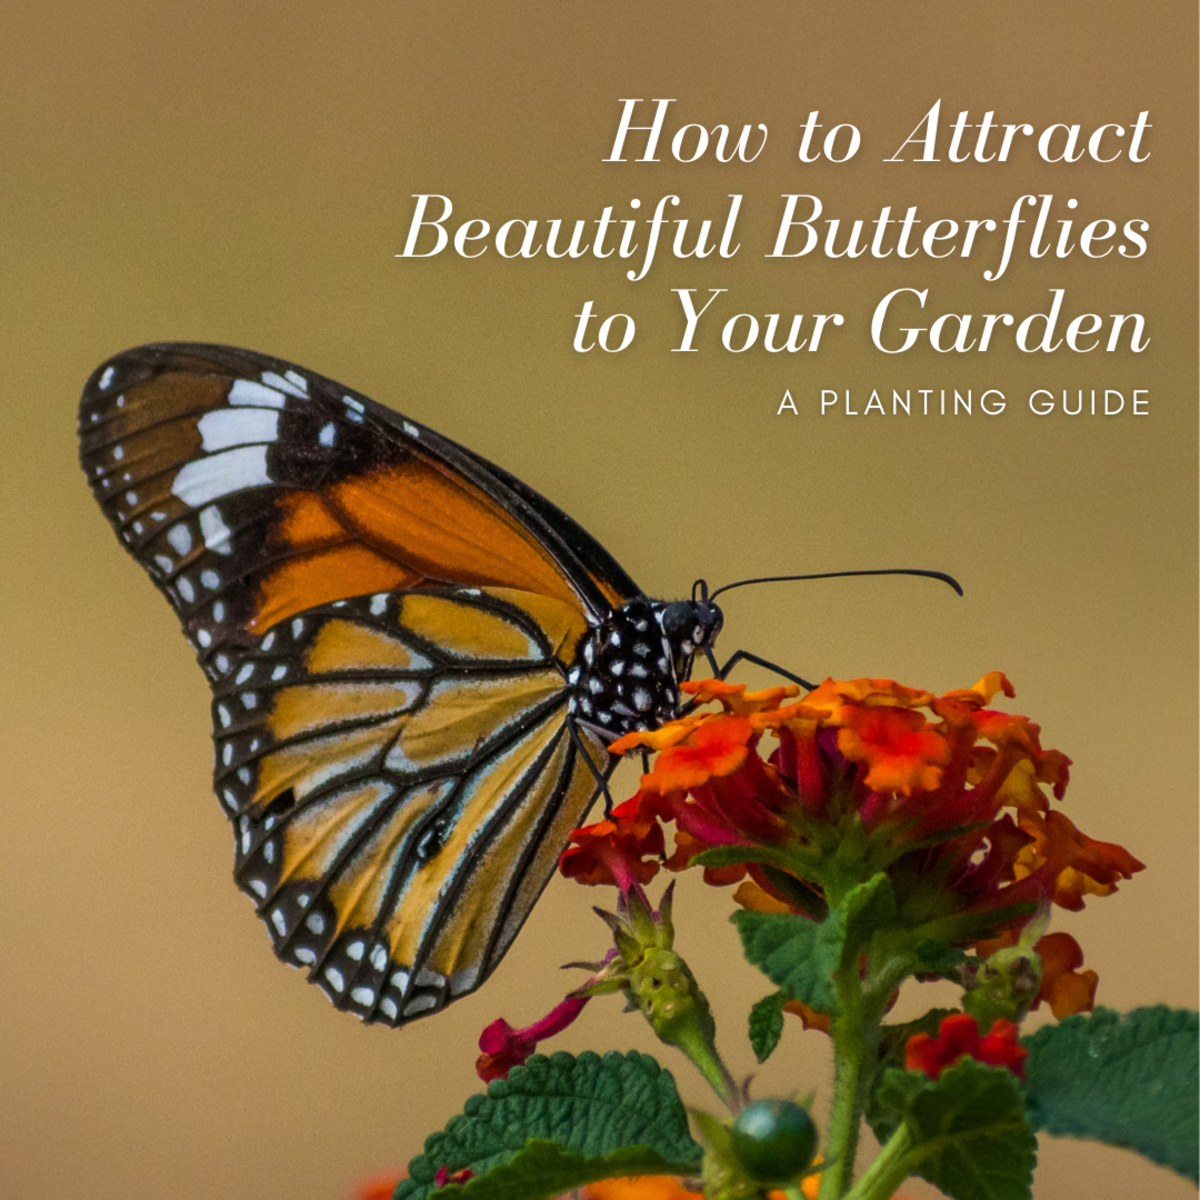 This article will help you attract gorgeous butterflies to your garden by planting the kinds of flowers they love to visit.